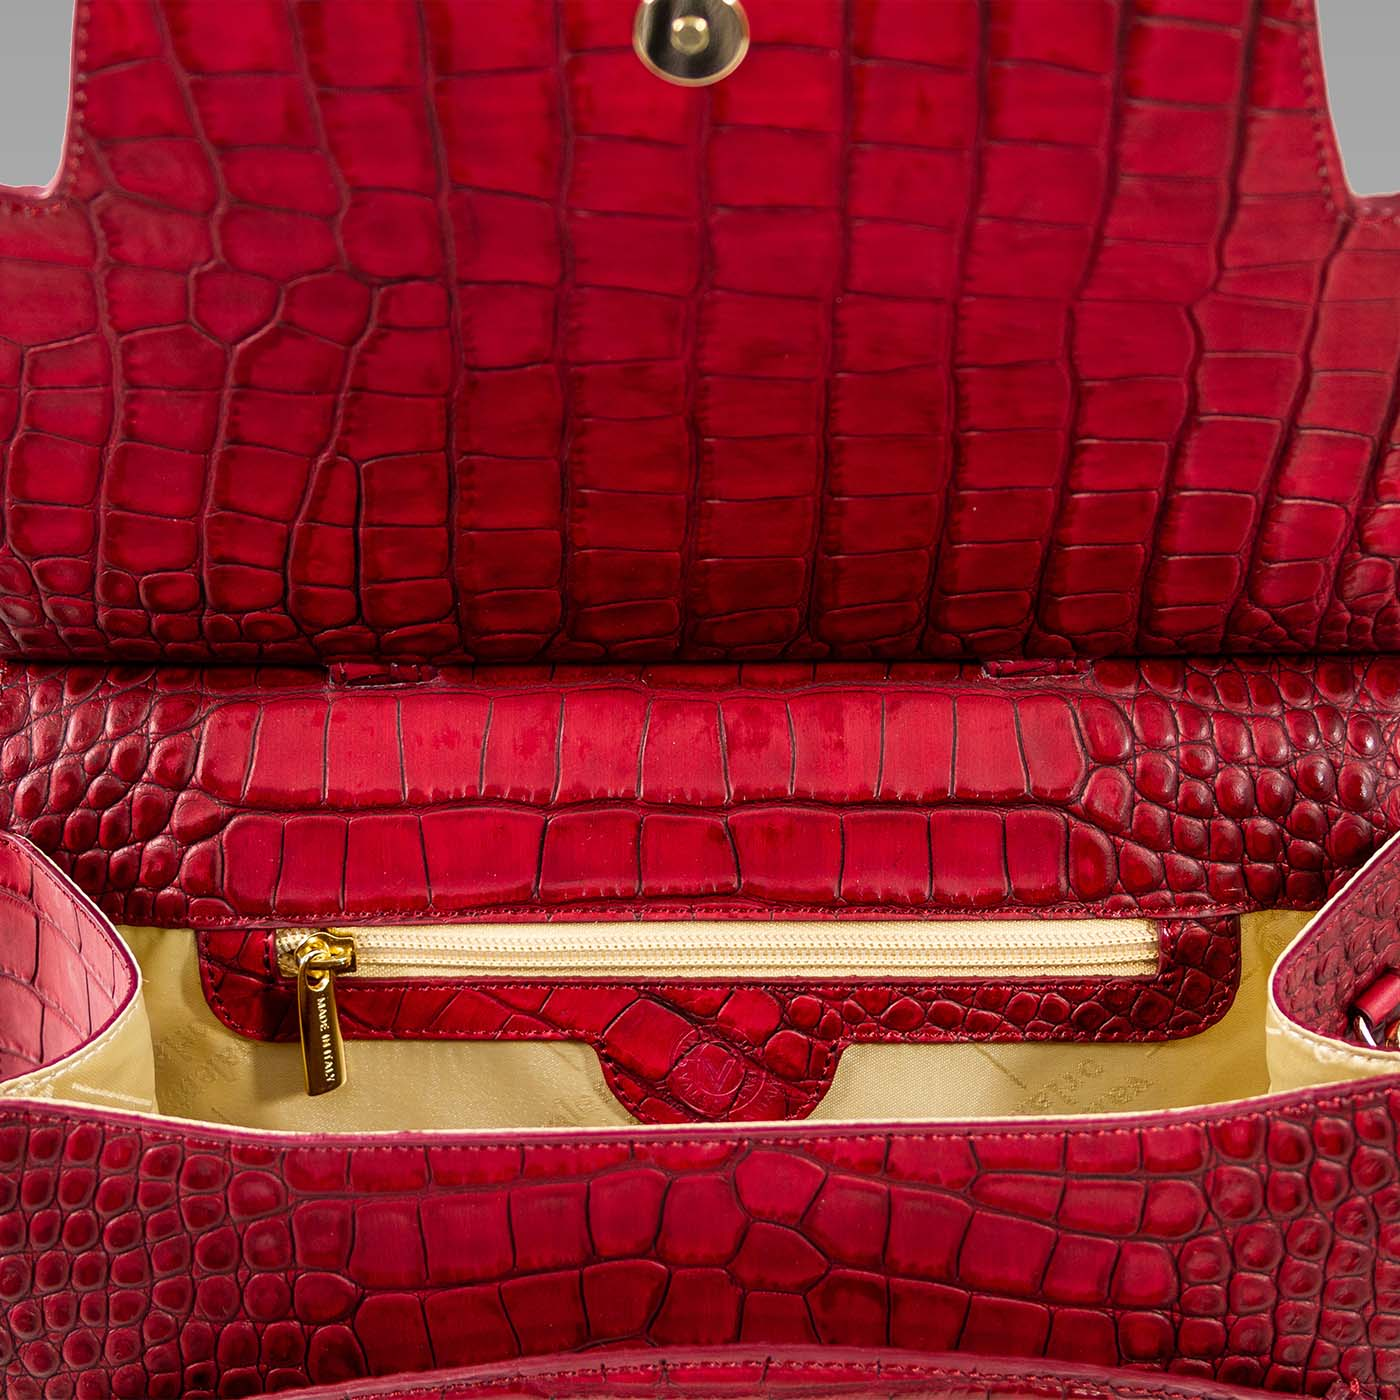 Valentino_Orlandi_Large_Purse_Scarlet_Red_Croc_Embossed_Leather_Tote_01VO42161CLRD_03.jpg